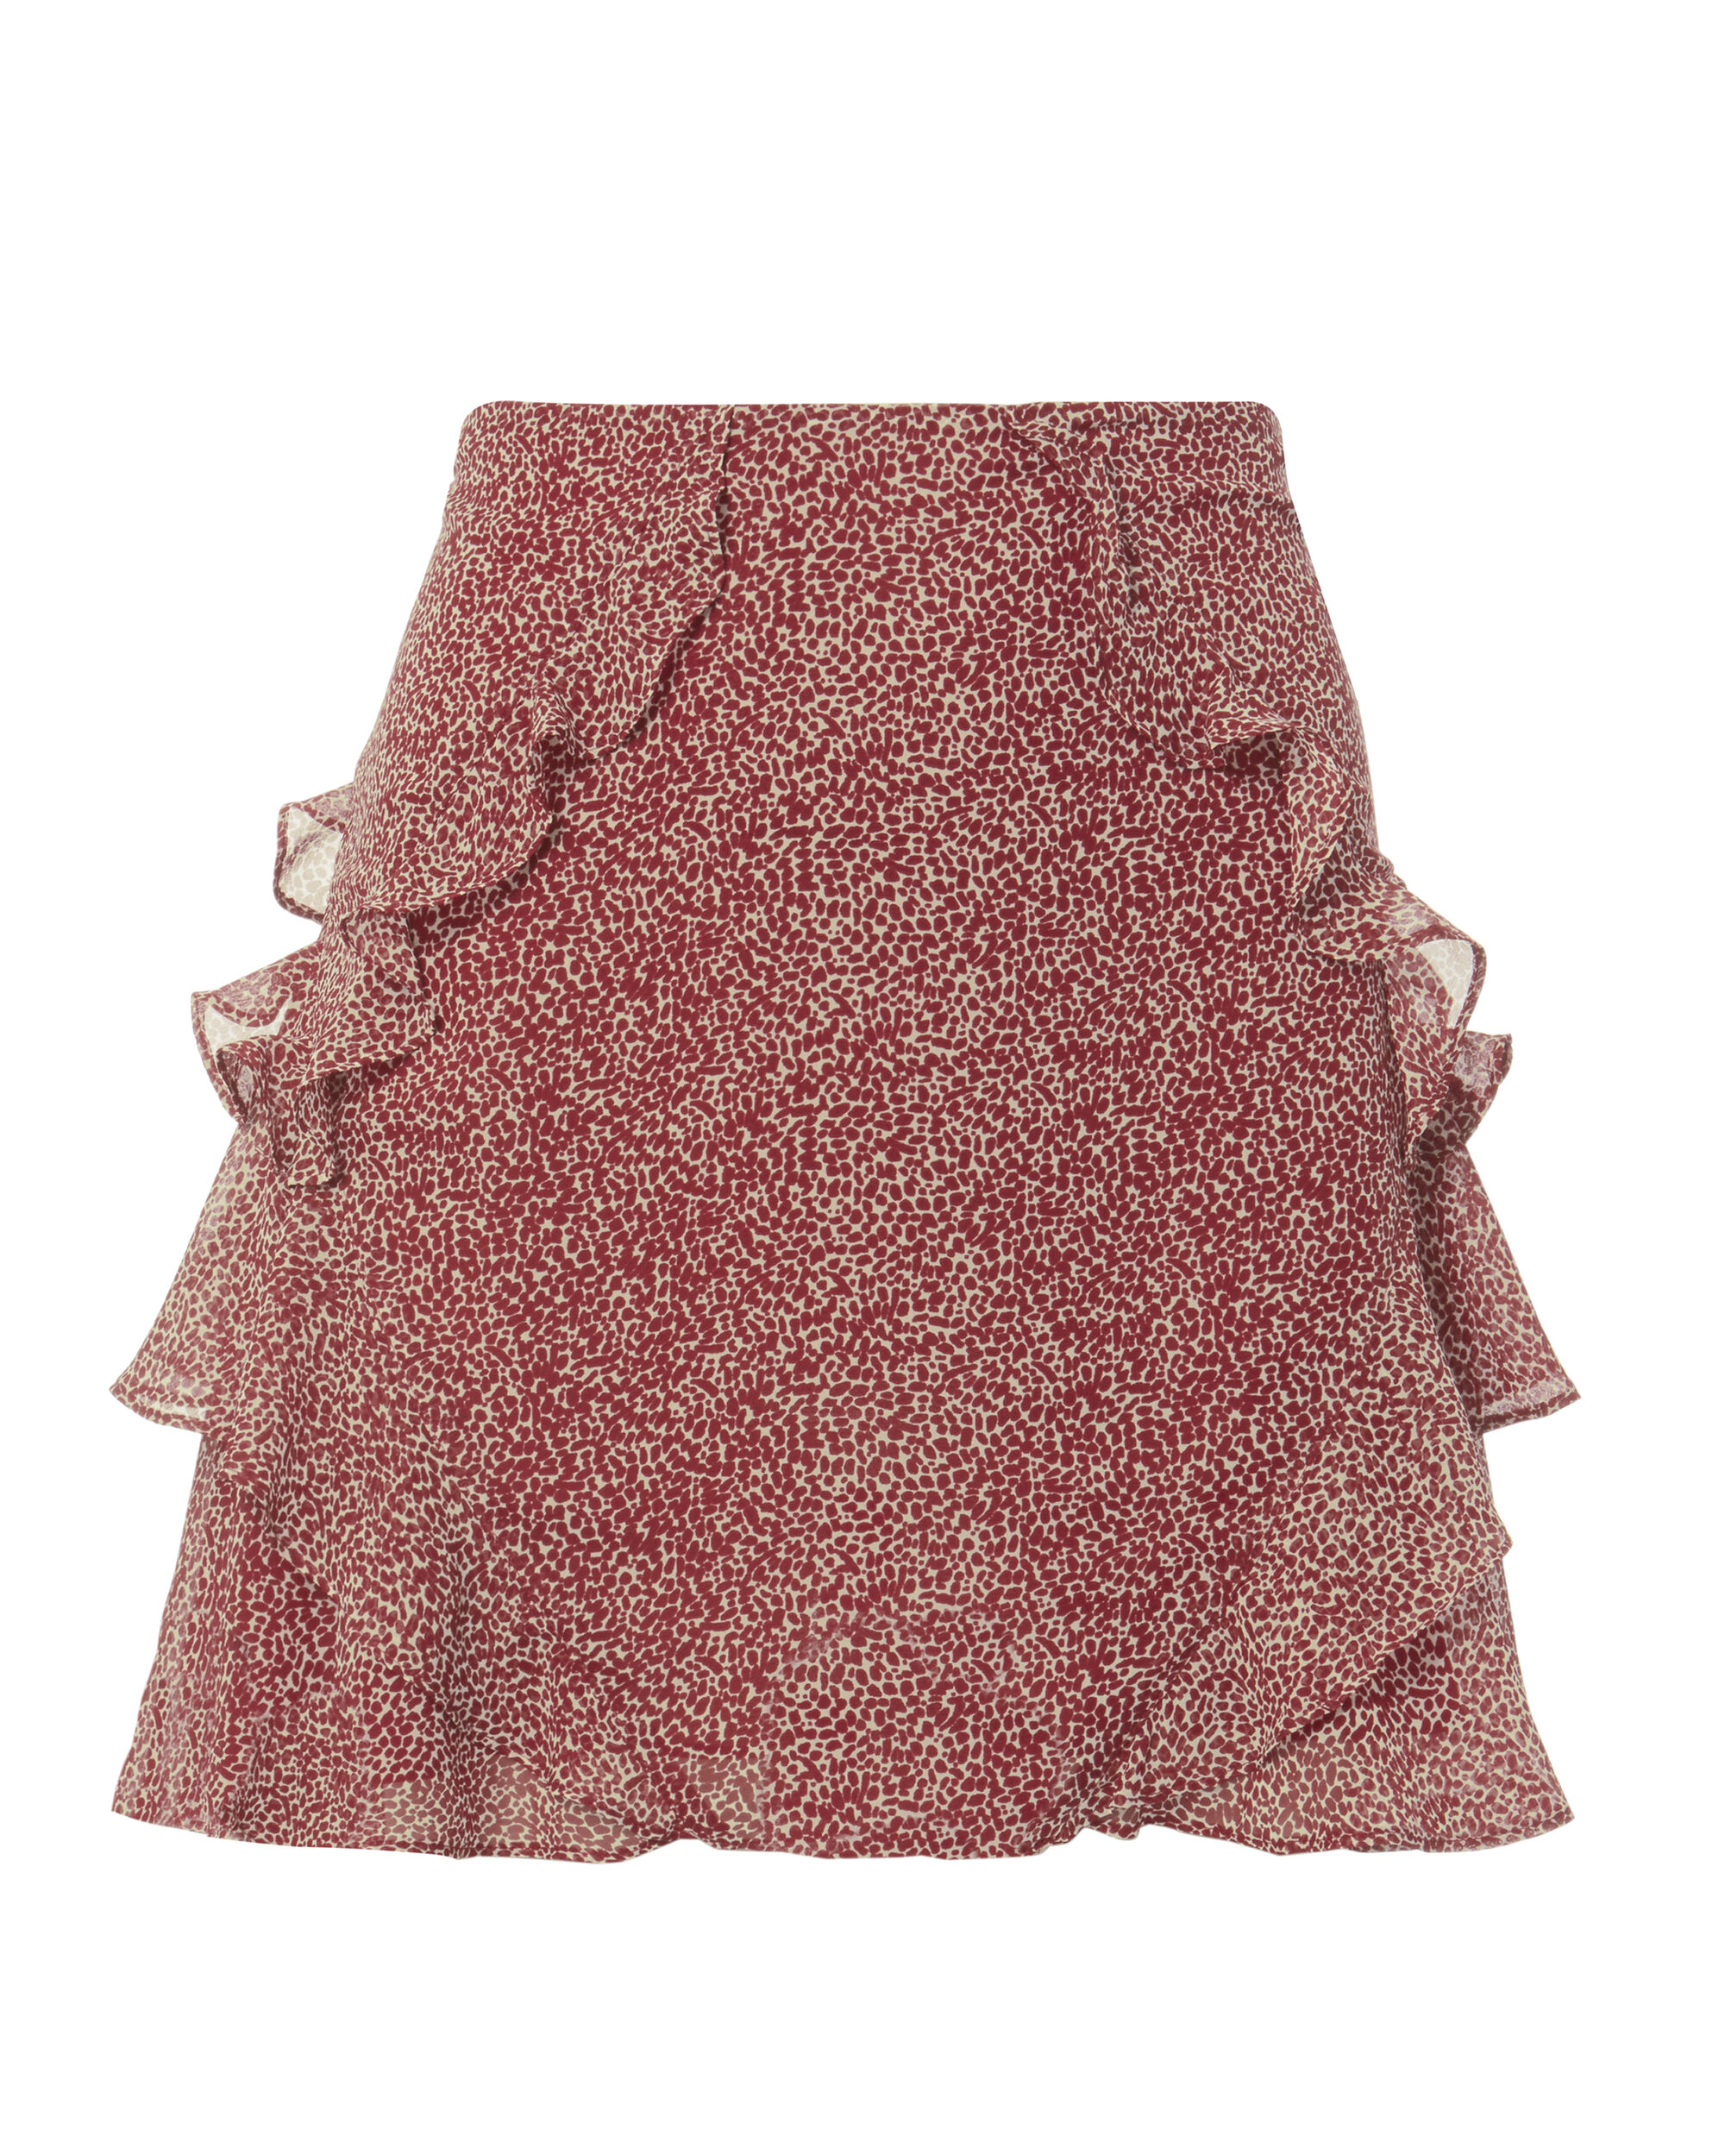 Red Dot Ruffle Mini Skirt, PRINT, hi-res